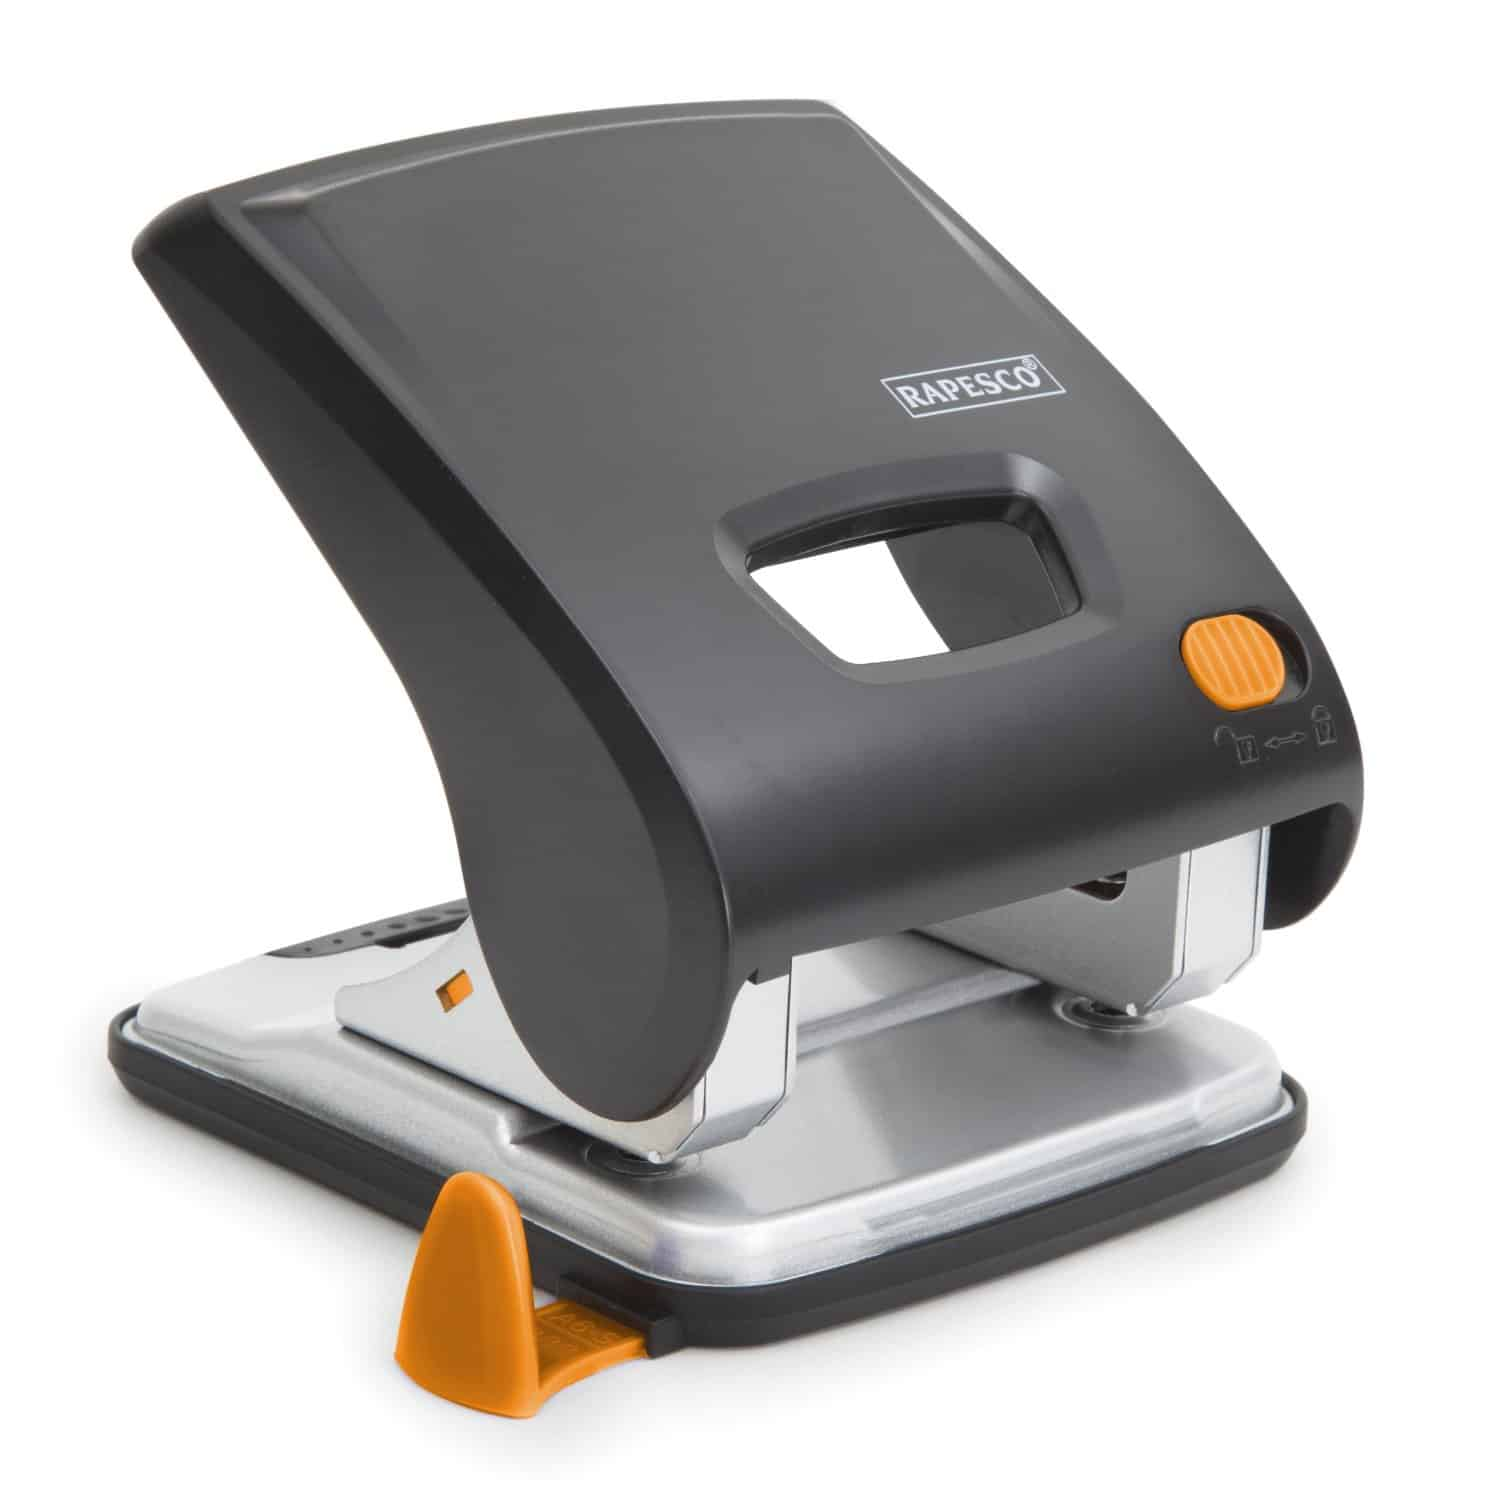 Best hole punch roundup - Reviewify